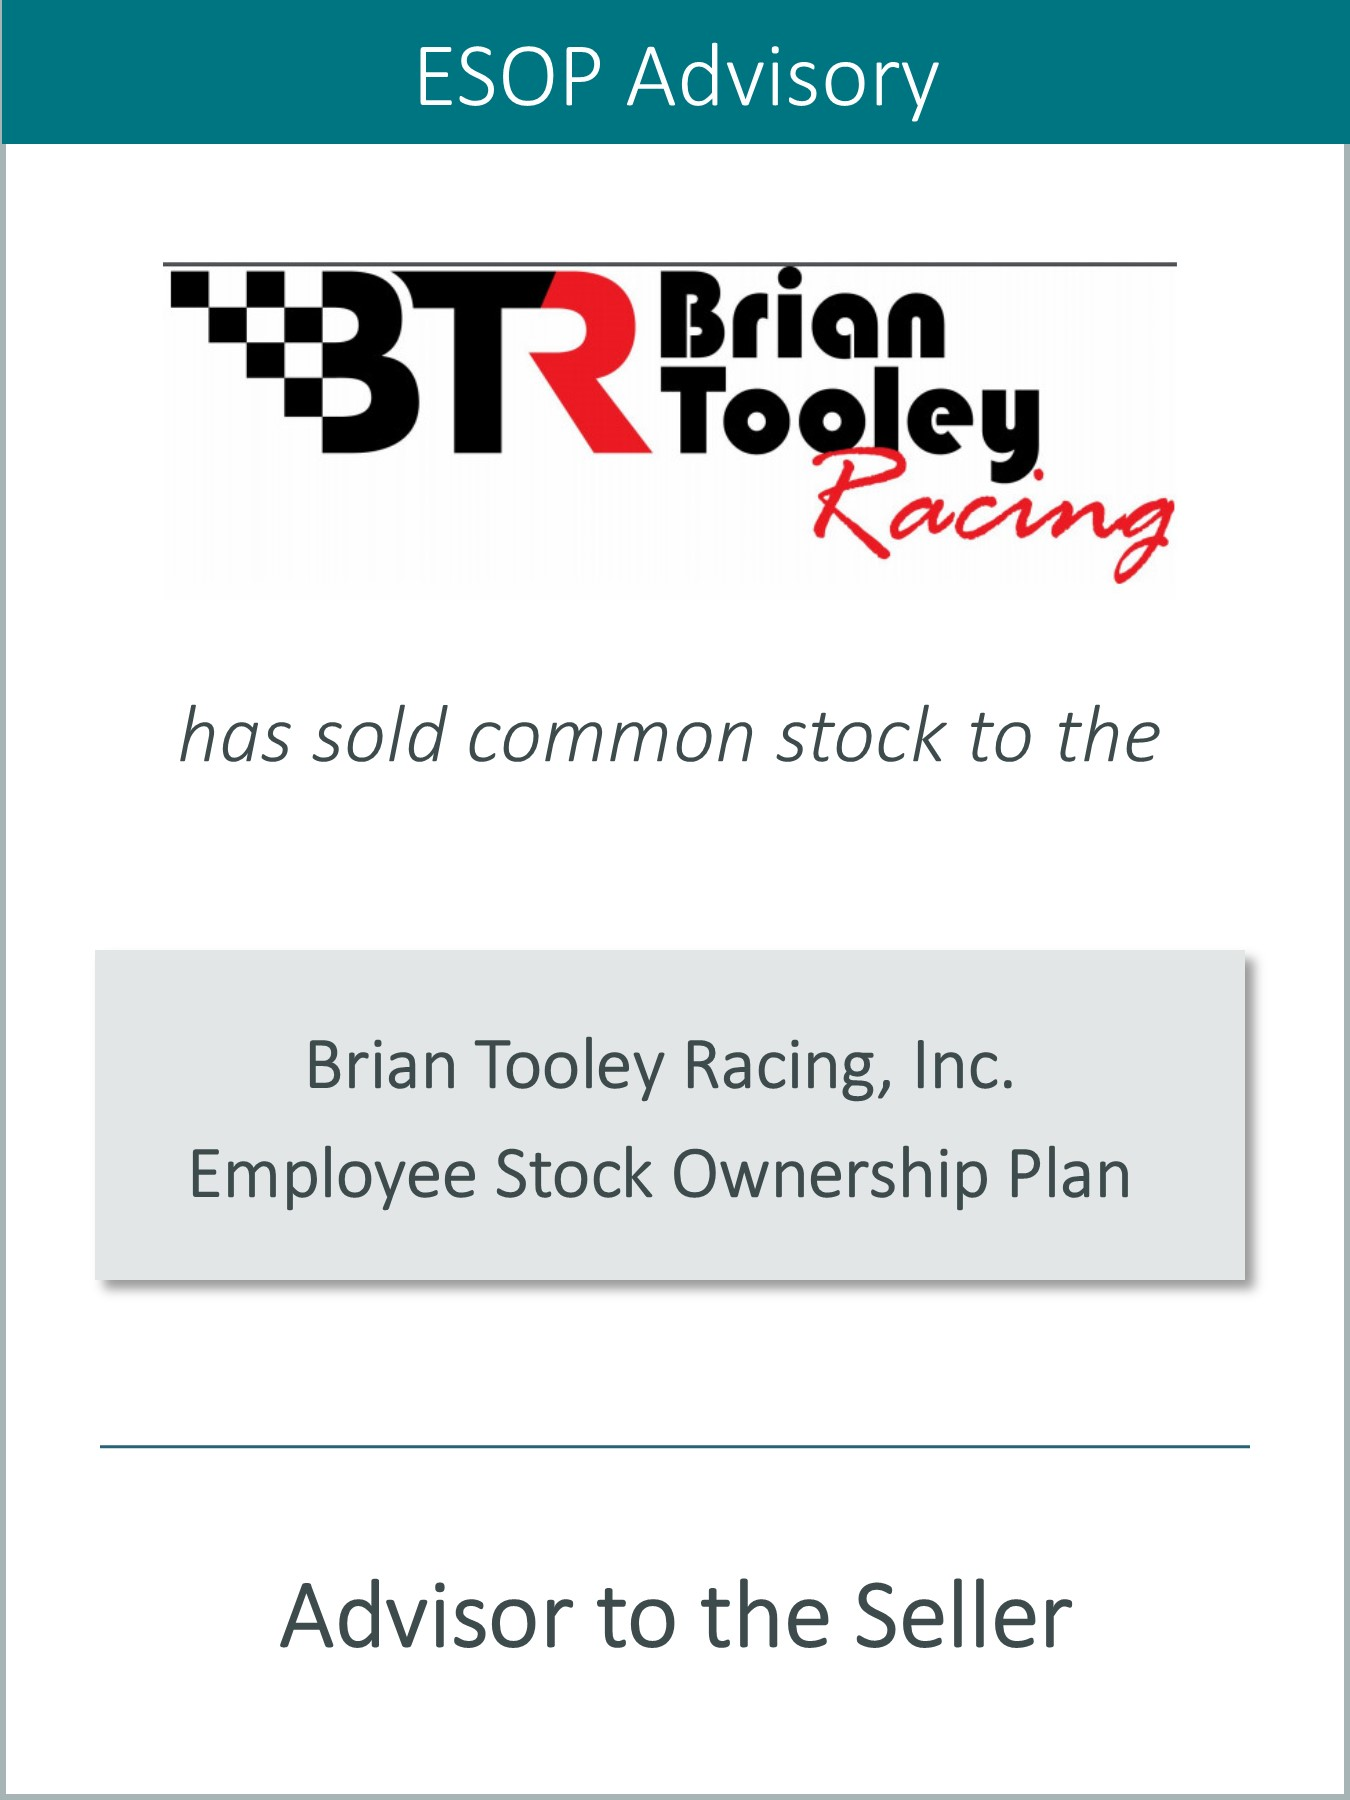 PRAIRIE ANNOUNCES THE SALE OF BRIAN TOOLEY RACING TO AN ESOP